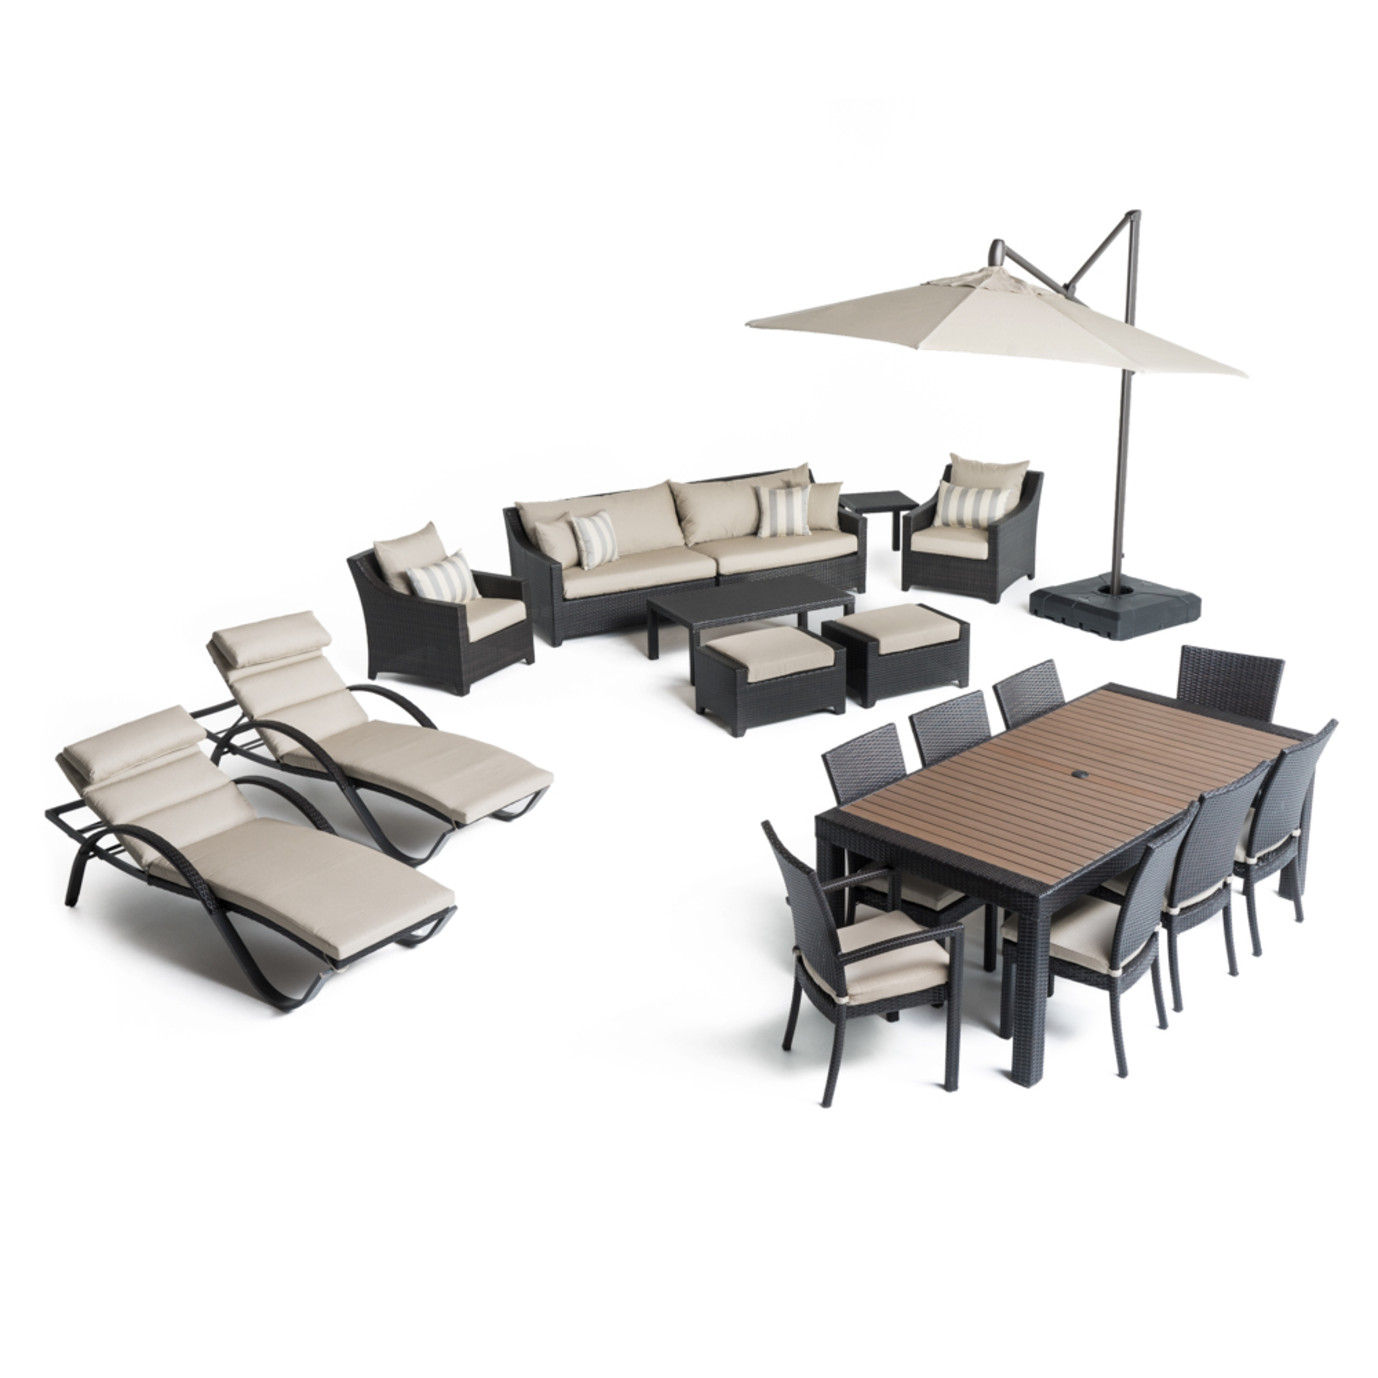 Deco™ 20pc Outdoor Estate Set - Slate Gray